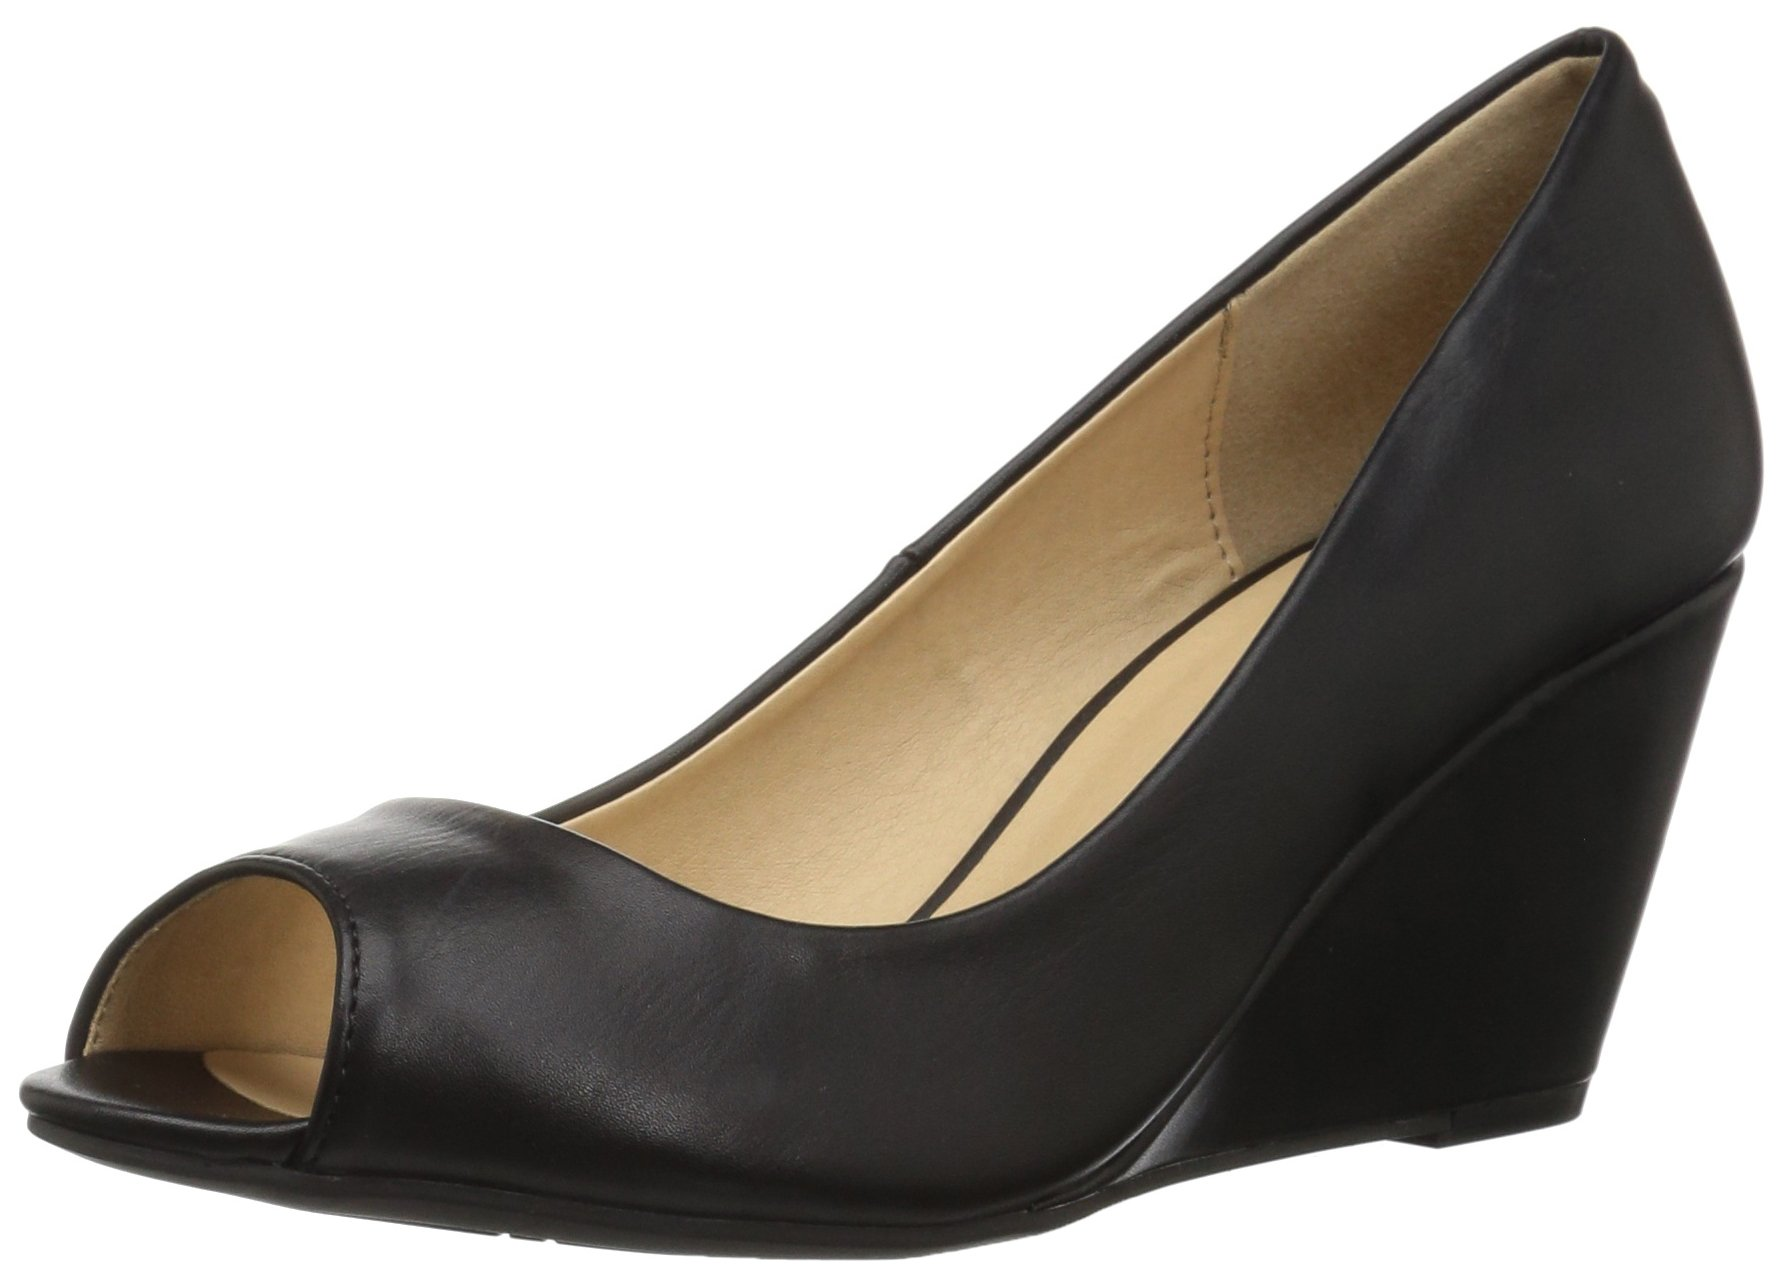 CL by Chinese Laundry Women's Noreen Wedge Pump, Black Smooth, 7.5 M US